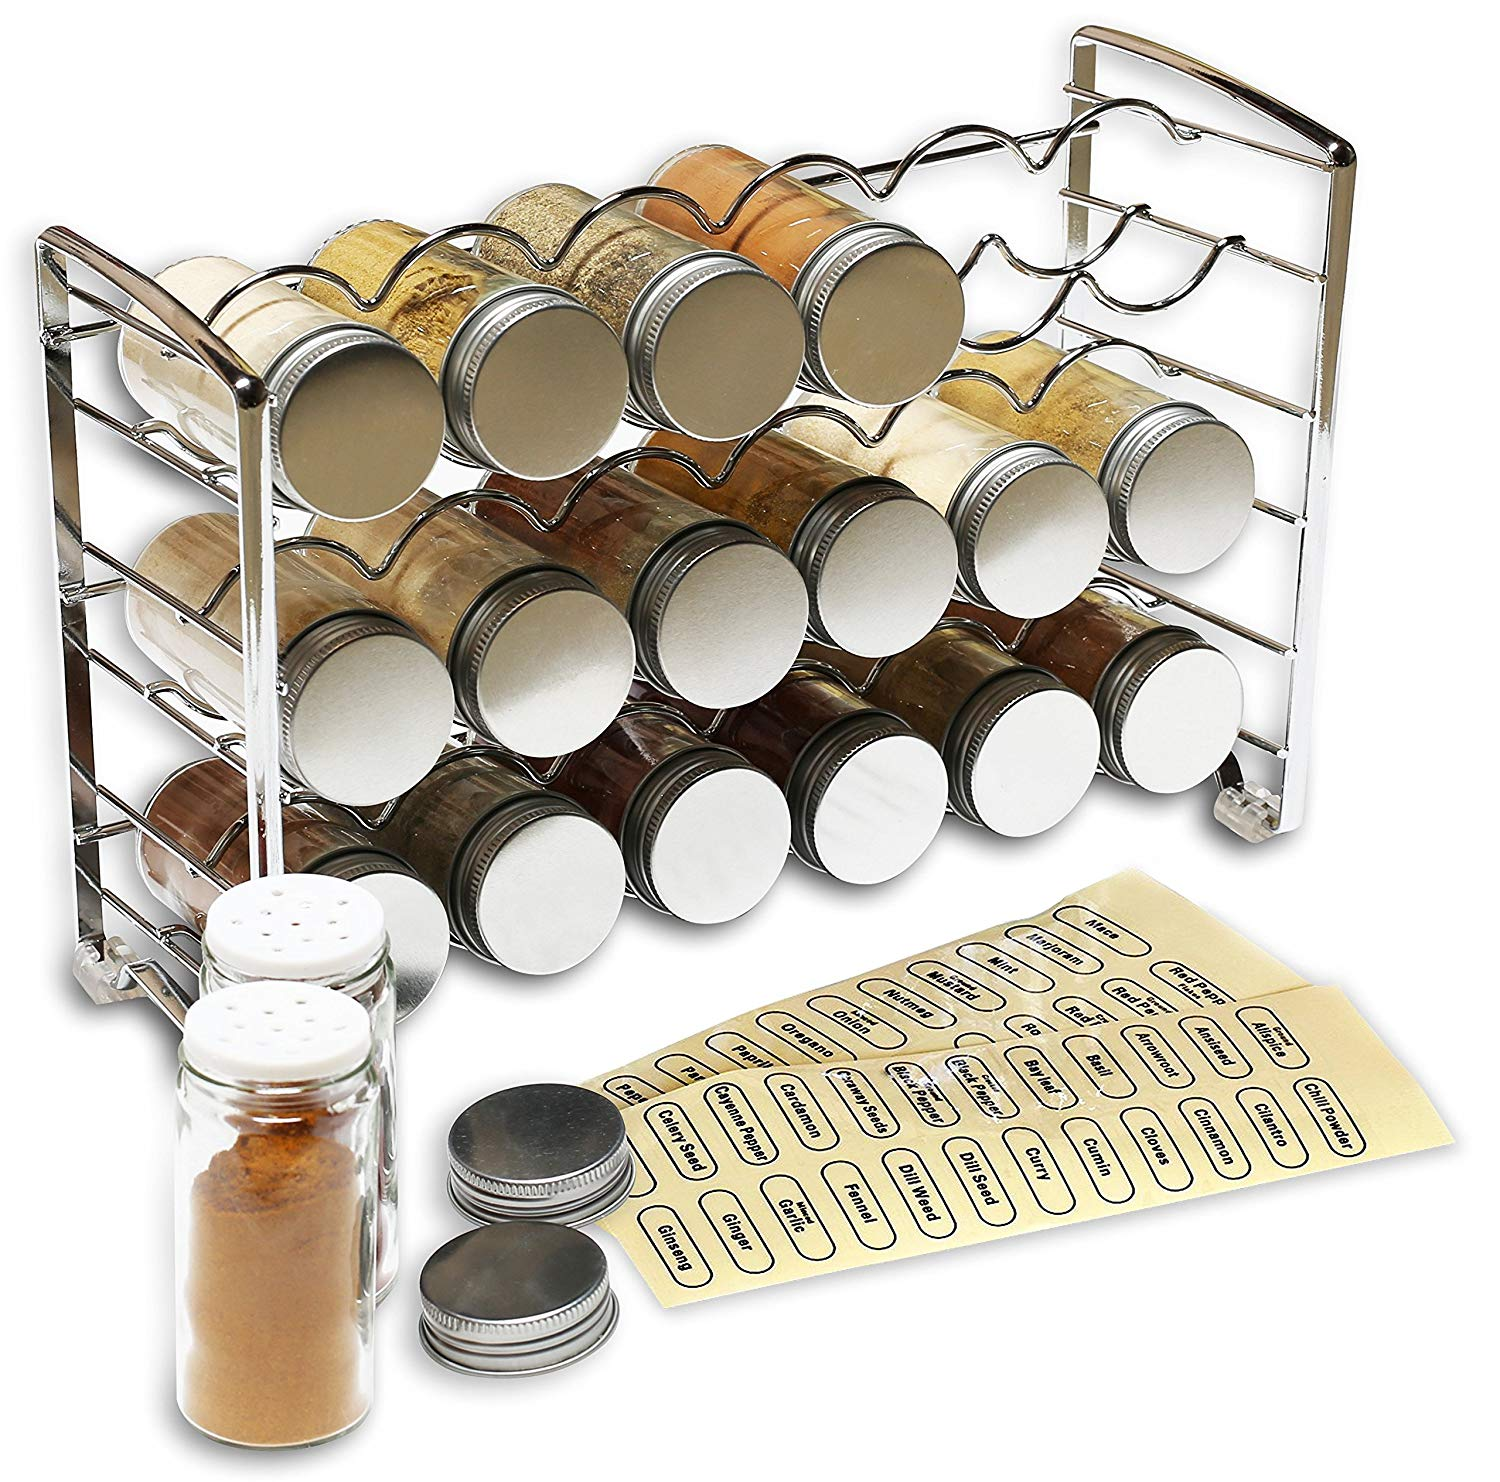 Decobros spice rack holder with 18 bottles and 48 labels